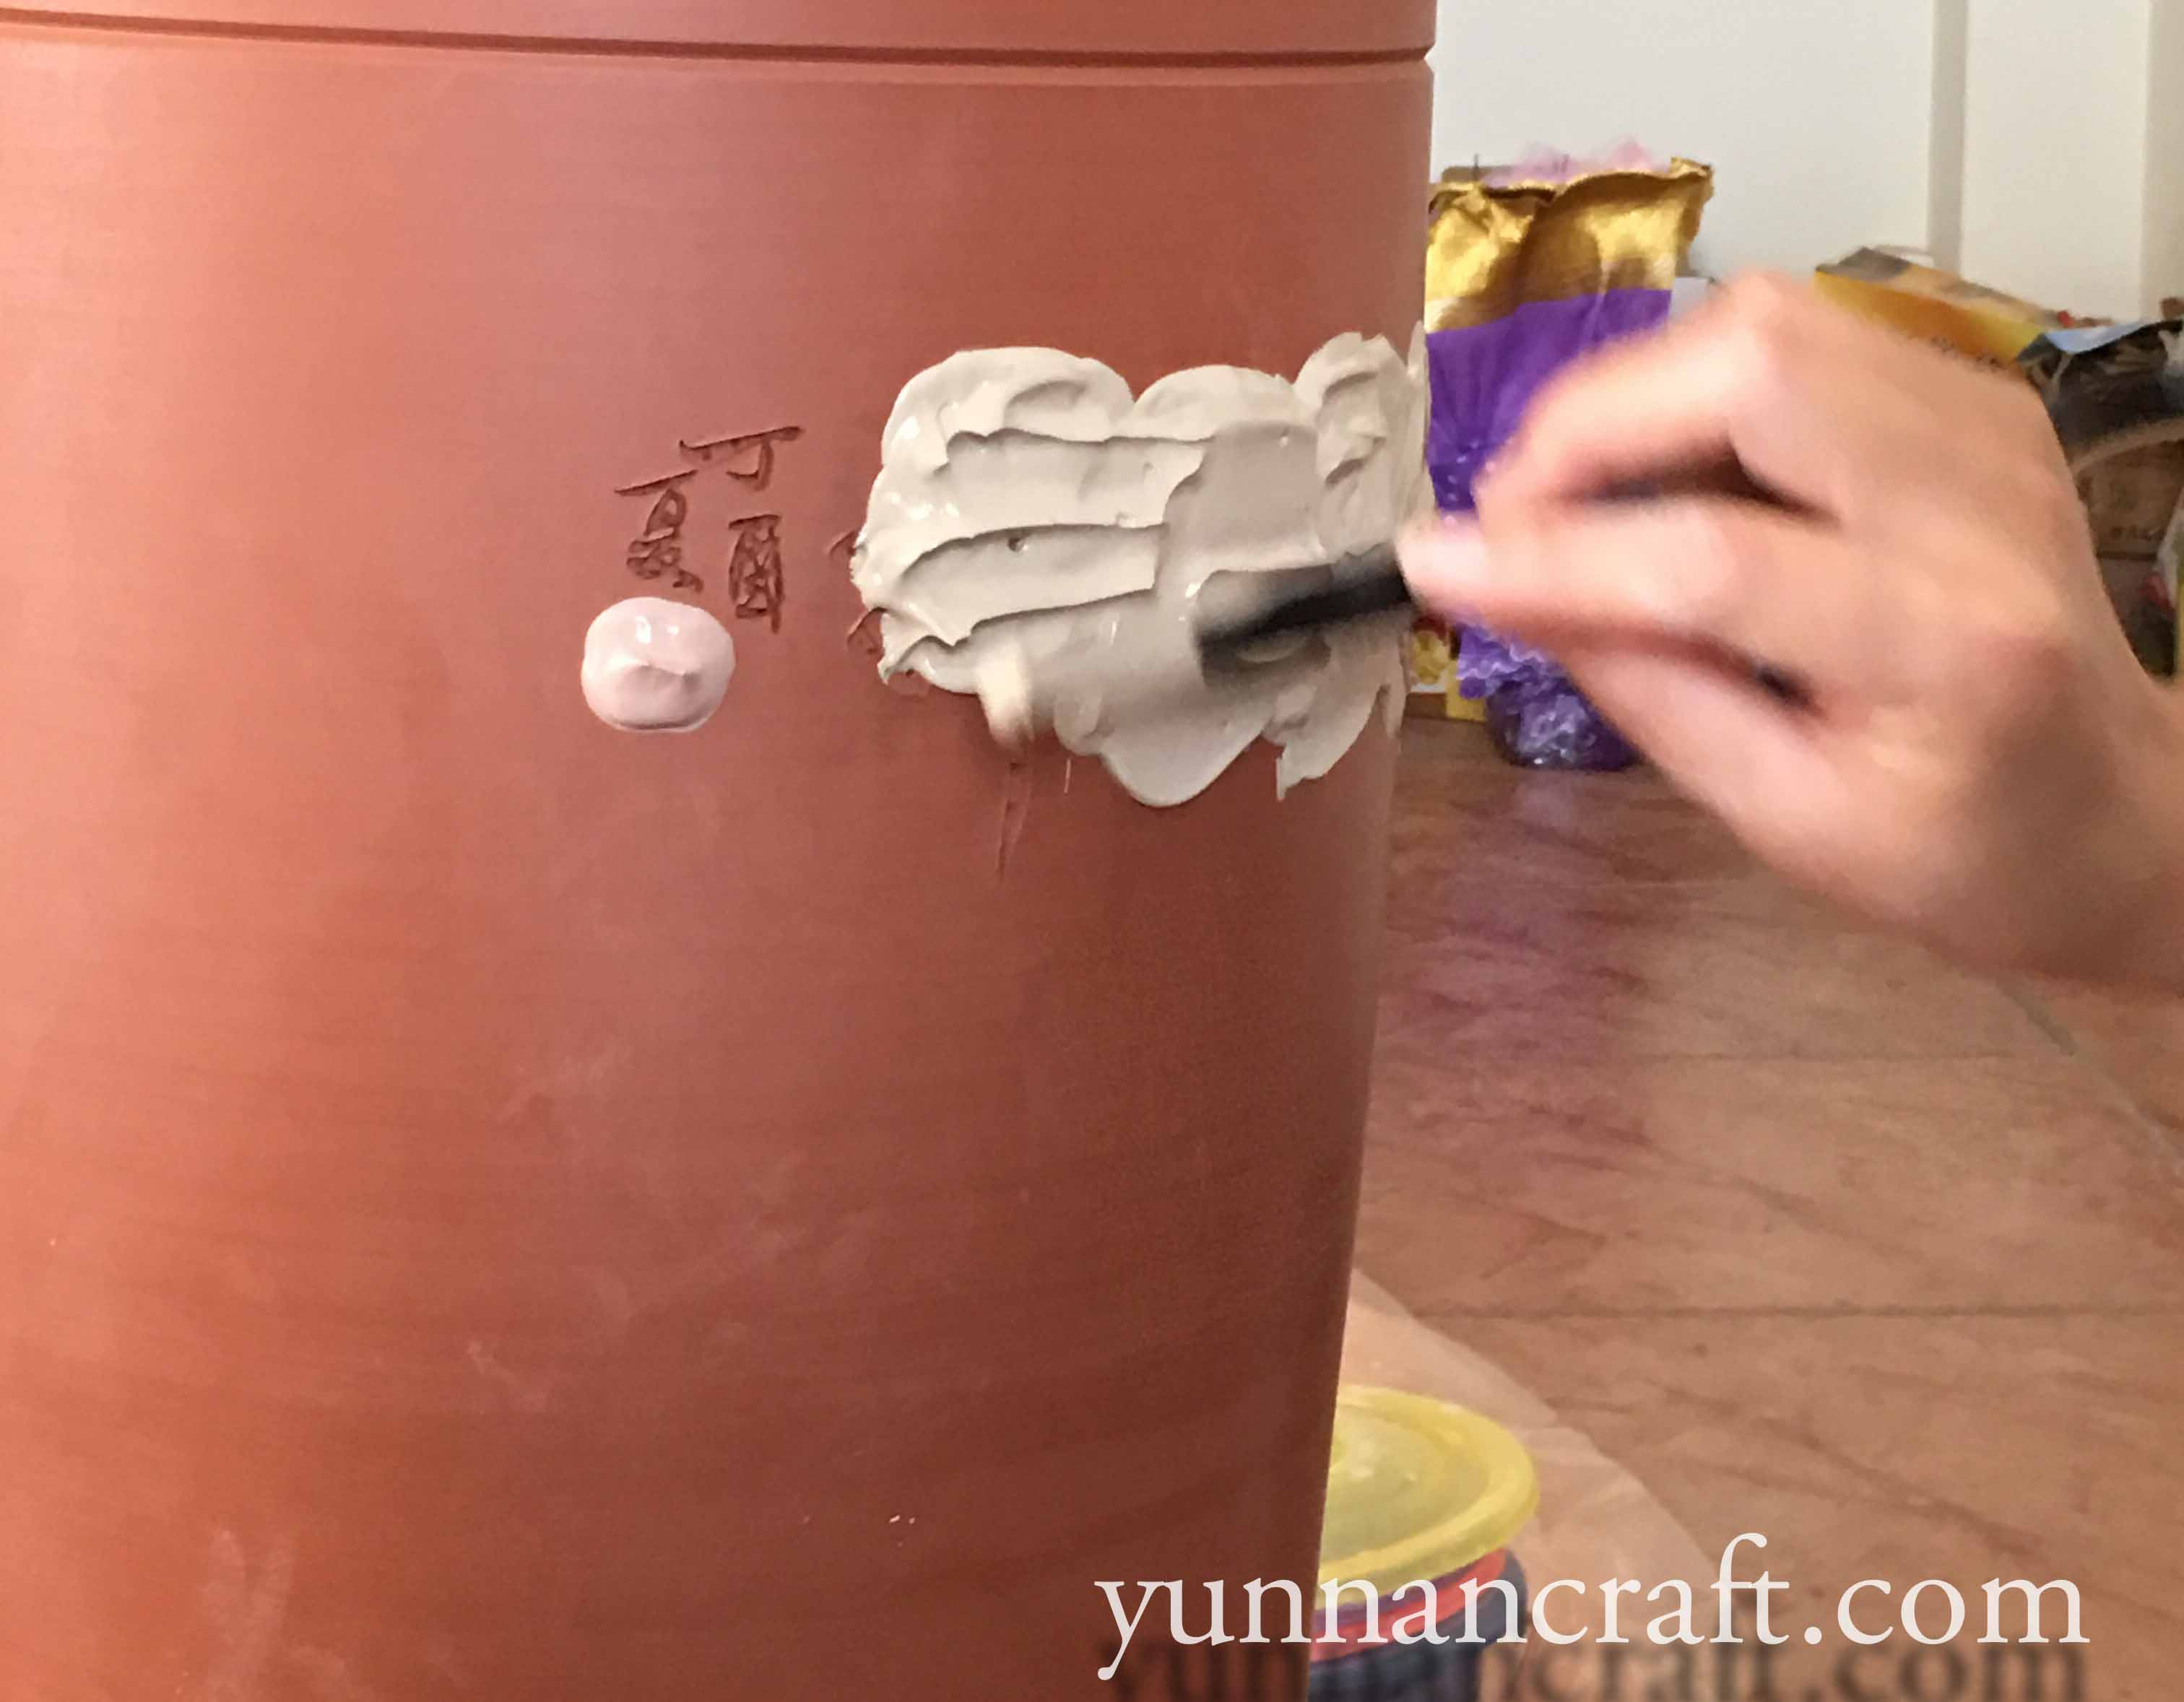 Carving into the Jianshui Clay